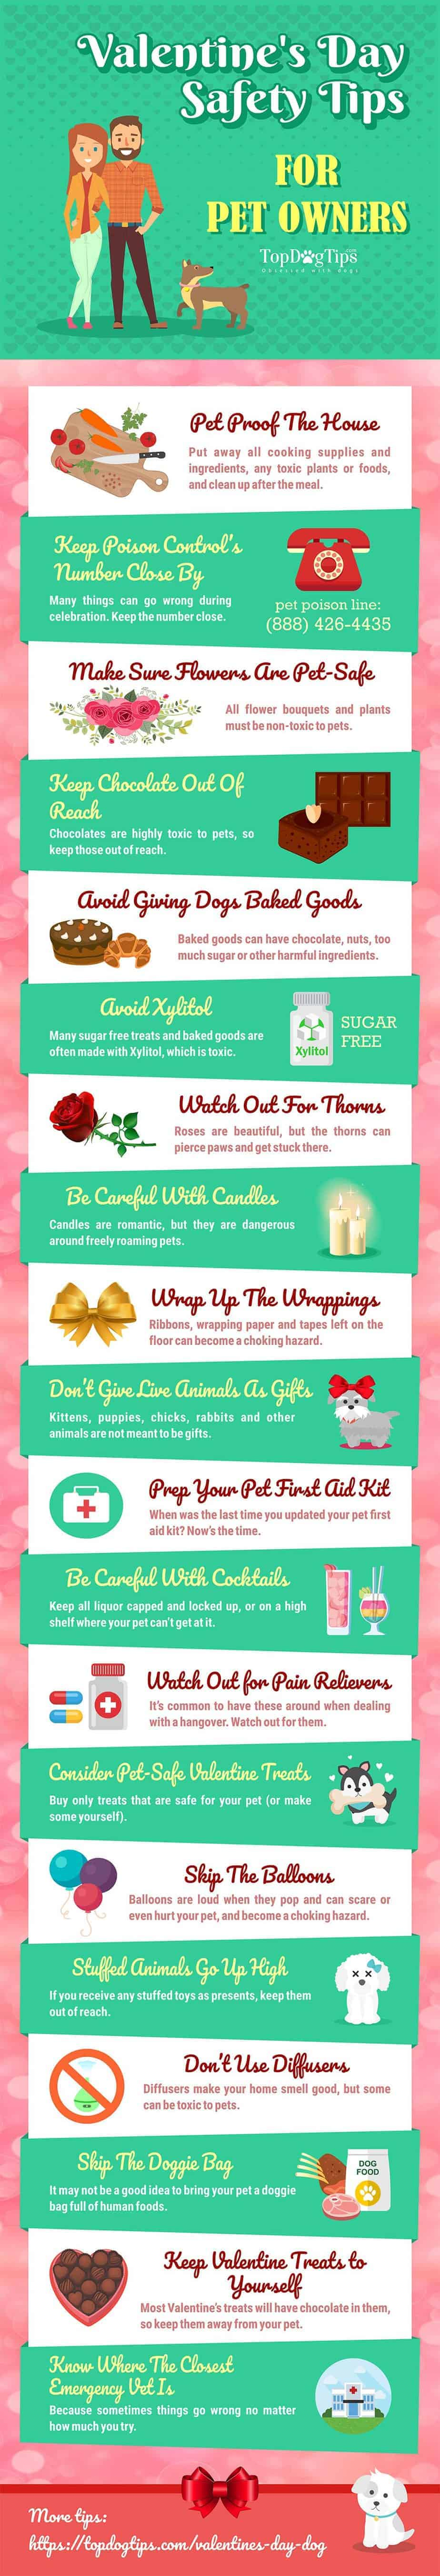 Valentine's Day dog safety tips graphic